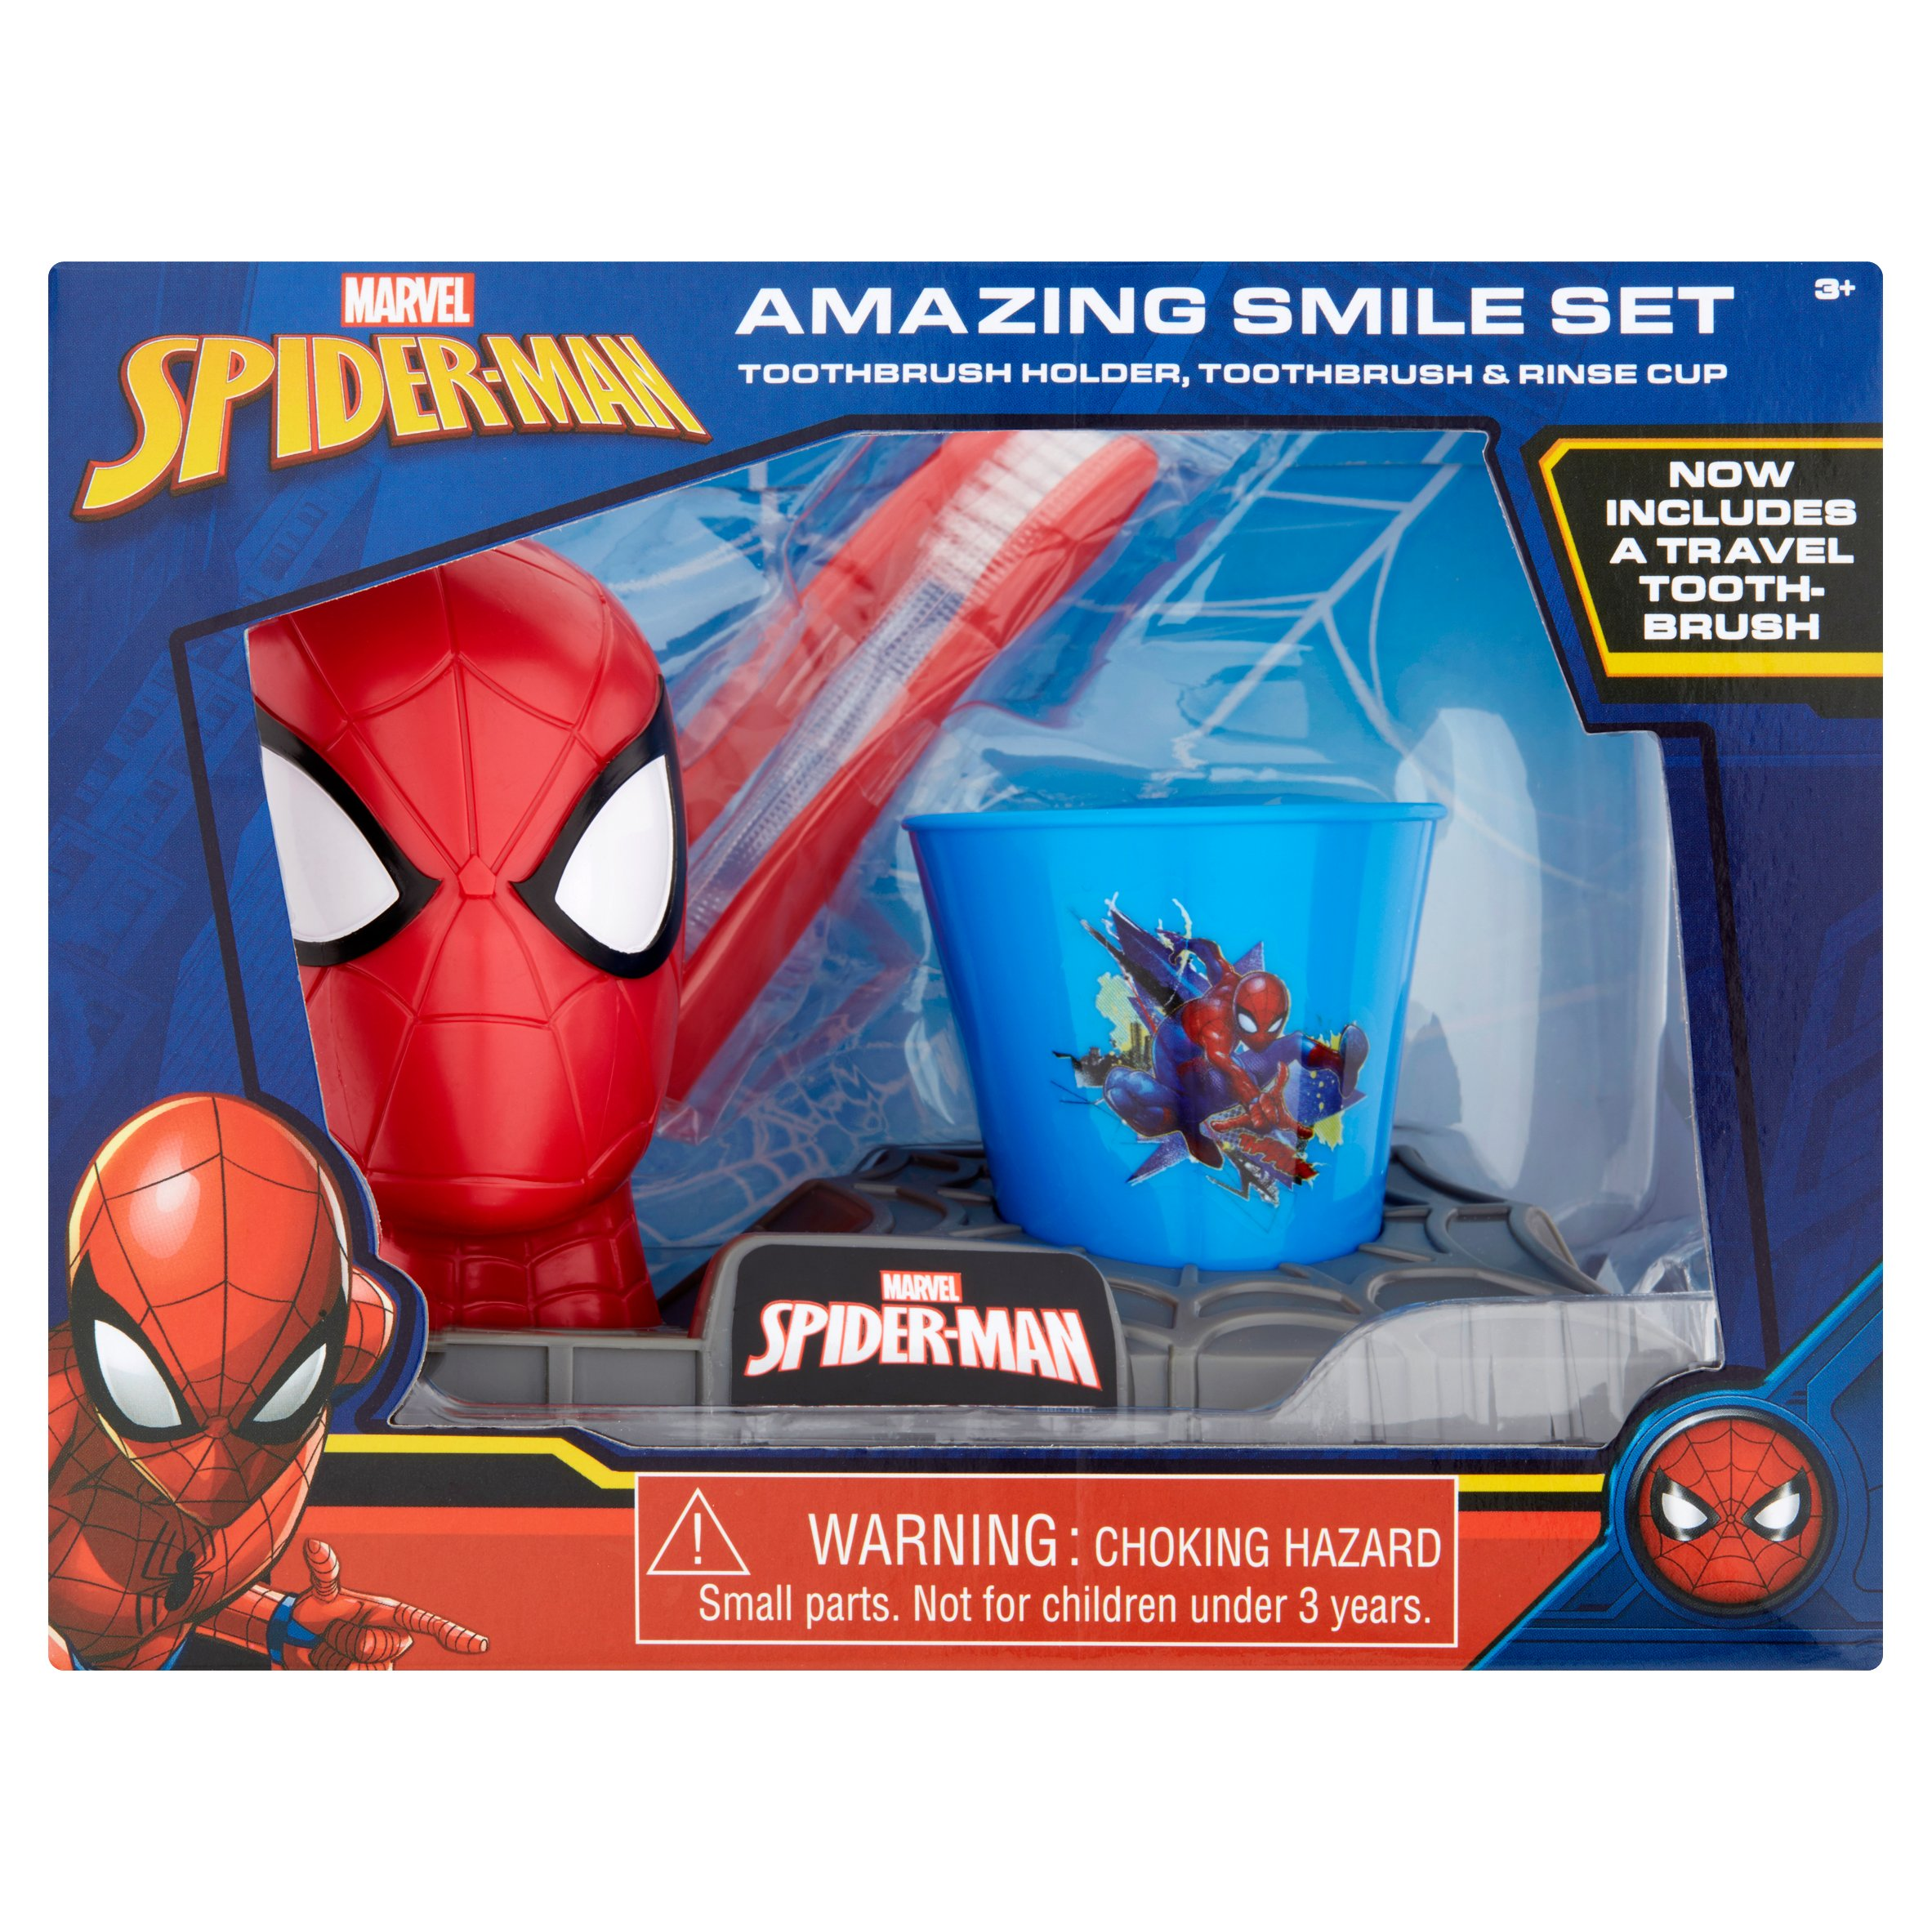 Marvel Spiderman Toothbrush, Toothbrush Holder, Rinse Cup Gift Set, 3pcs